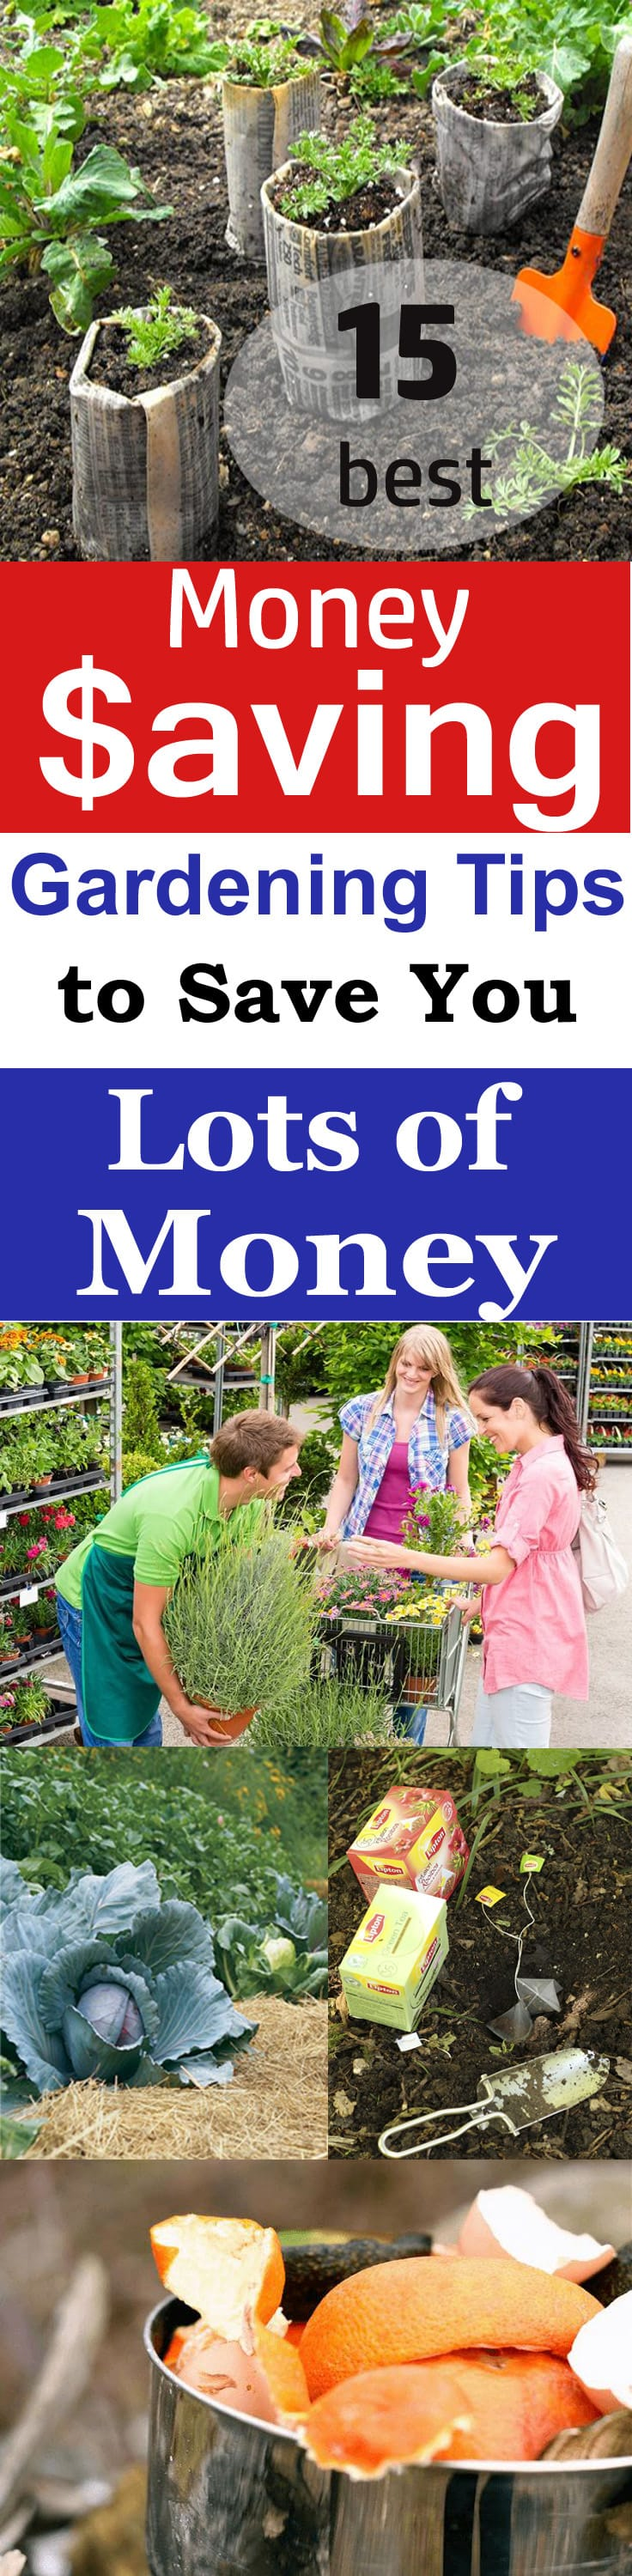 Gardening Can Be An Expensive Hobby, But If You Want, You Can Save A